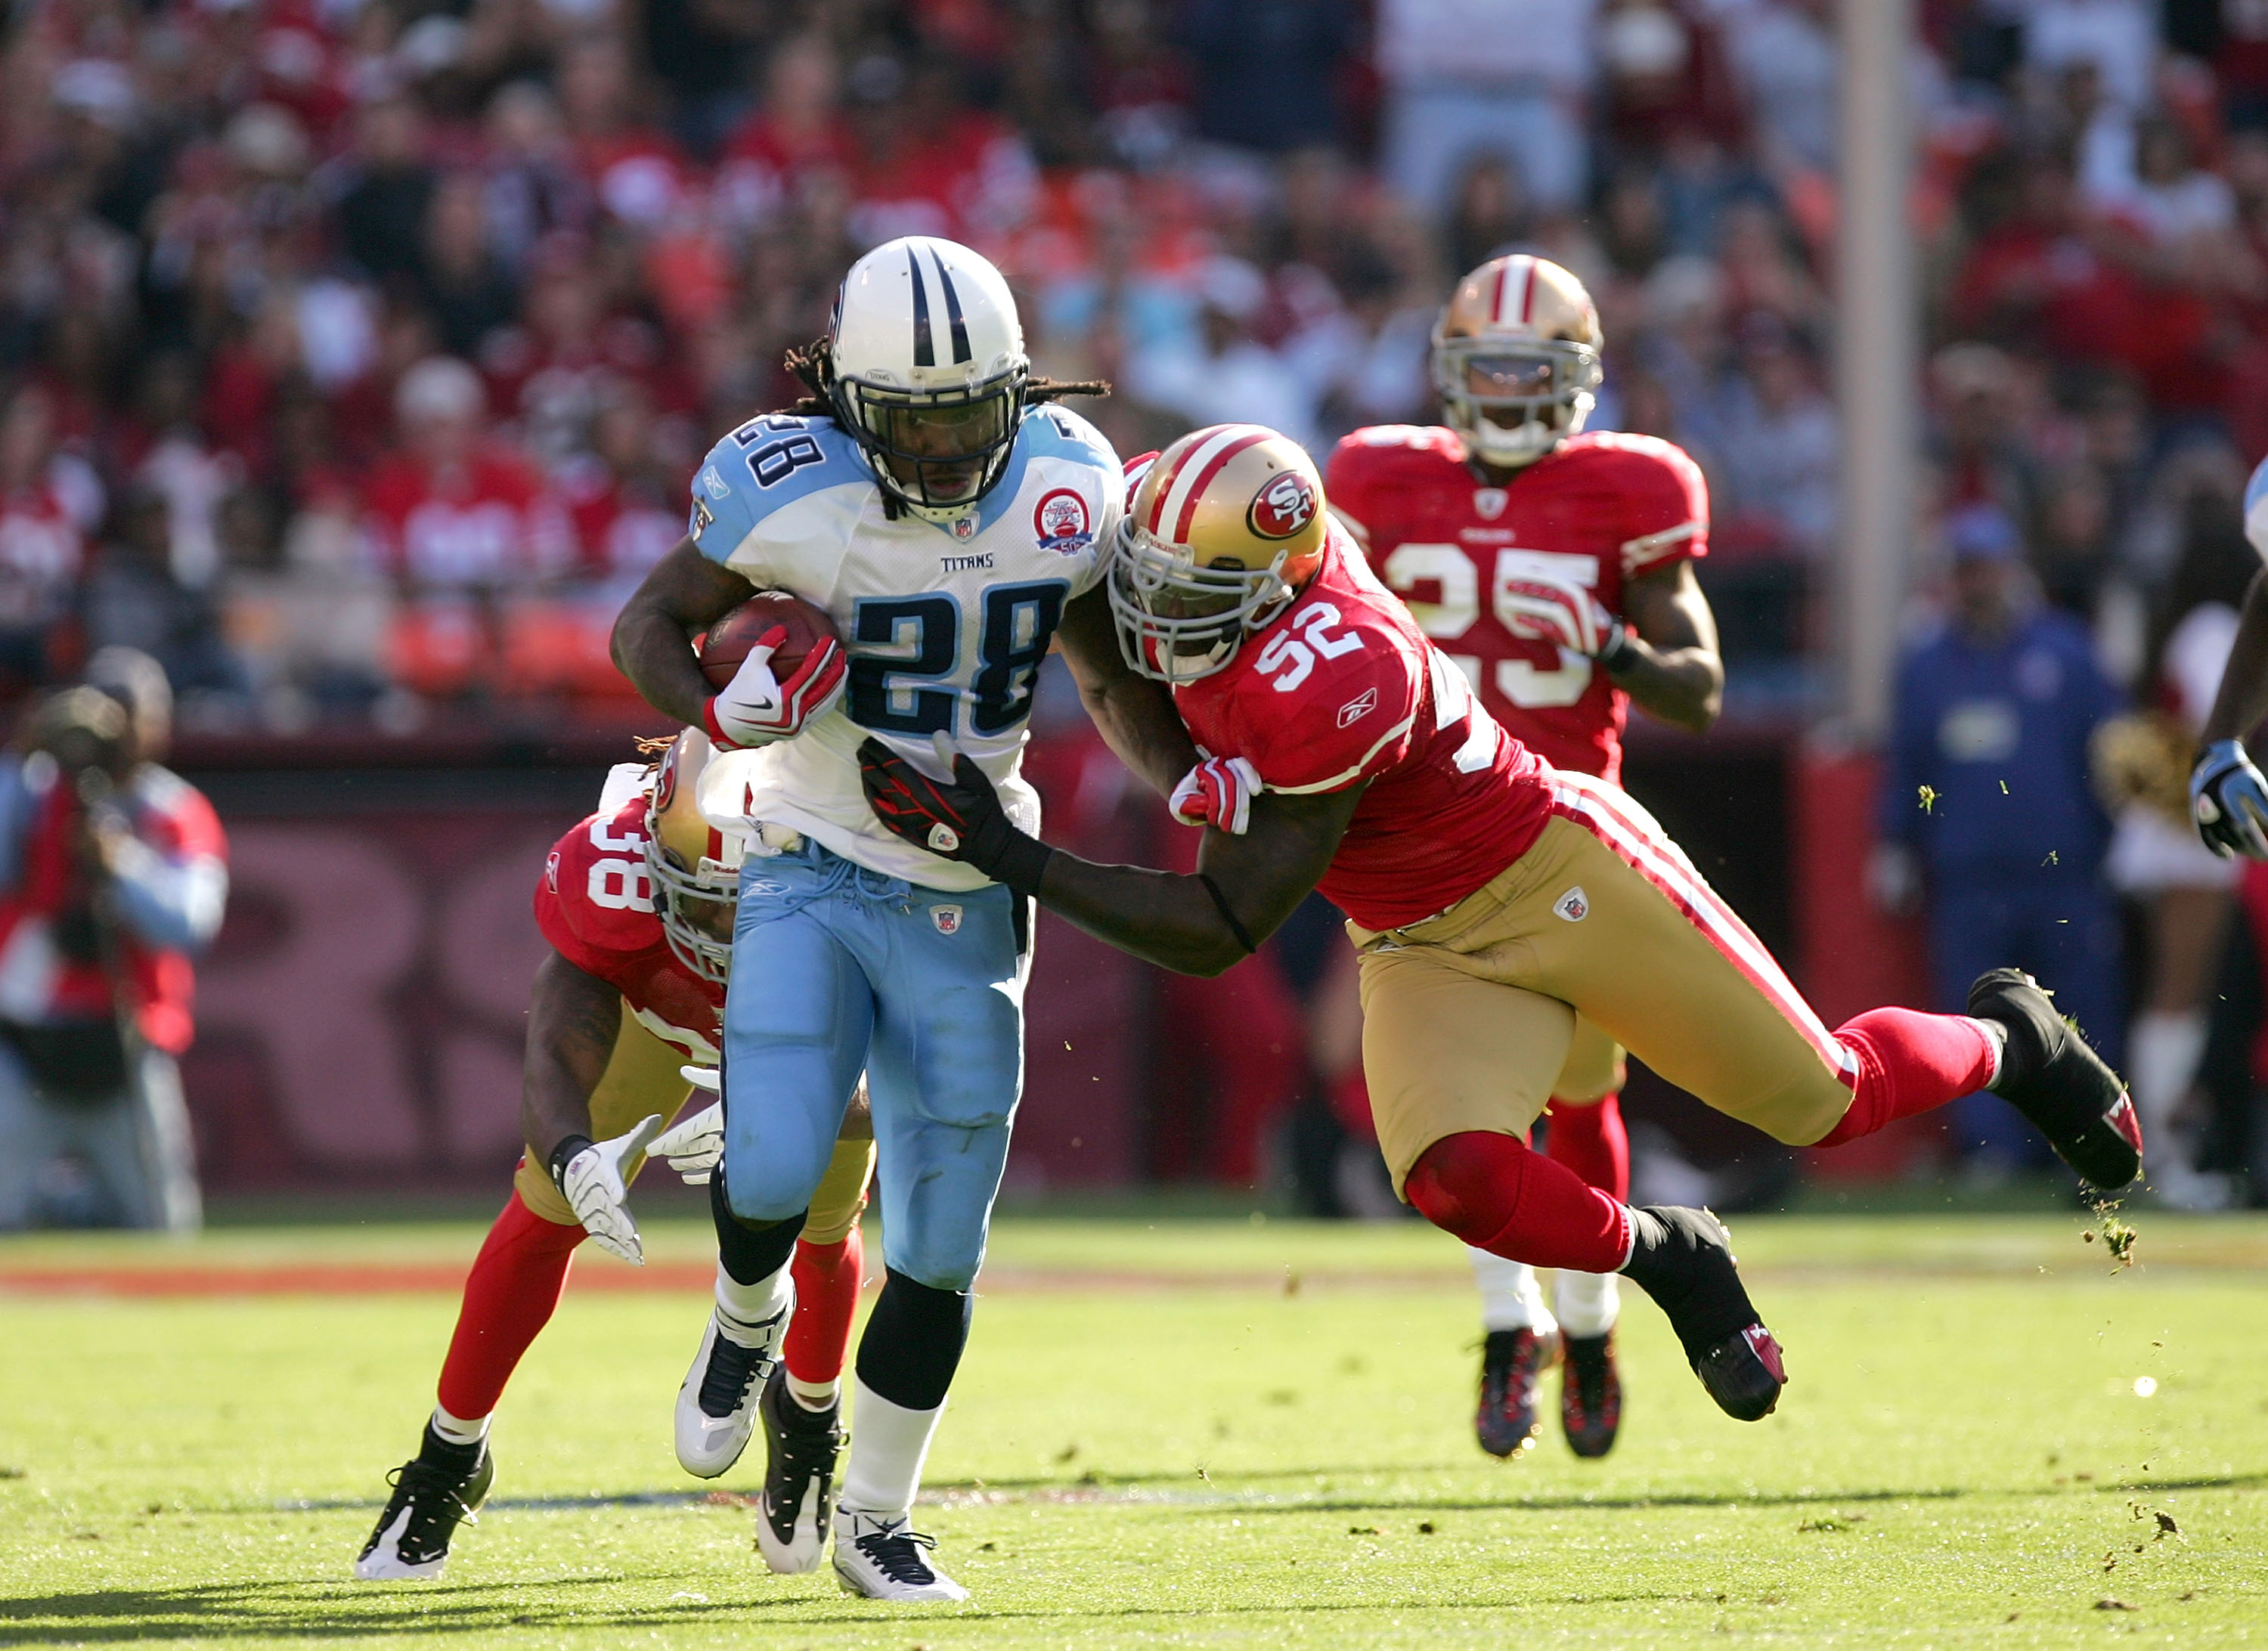 SAN FRANCISCO - NOVEMBER 08:  Chris Johnson #28 of the Tennessee Titans runs is tackled by Patrick Willis #52 of the San Francisco 49ers at Candlestick Park on November 8, 2009 in San Francisco, California.  (Photo by Ezra Shaw/Getty Images)